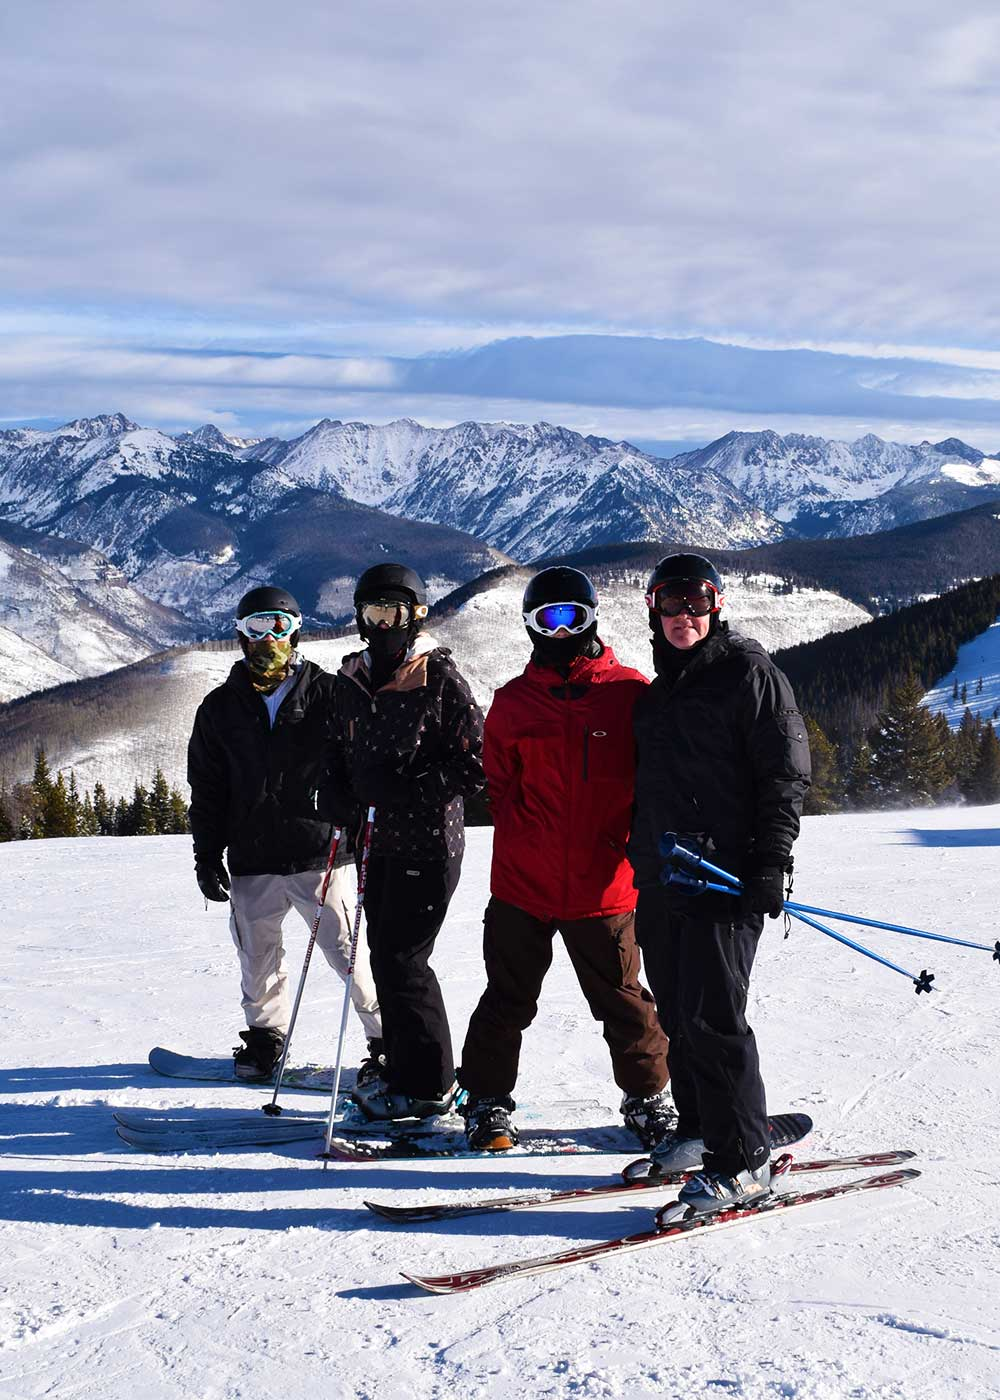 Skiing During Peak Times - On the Slopes